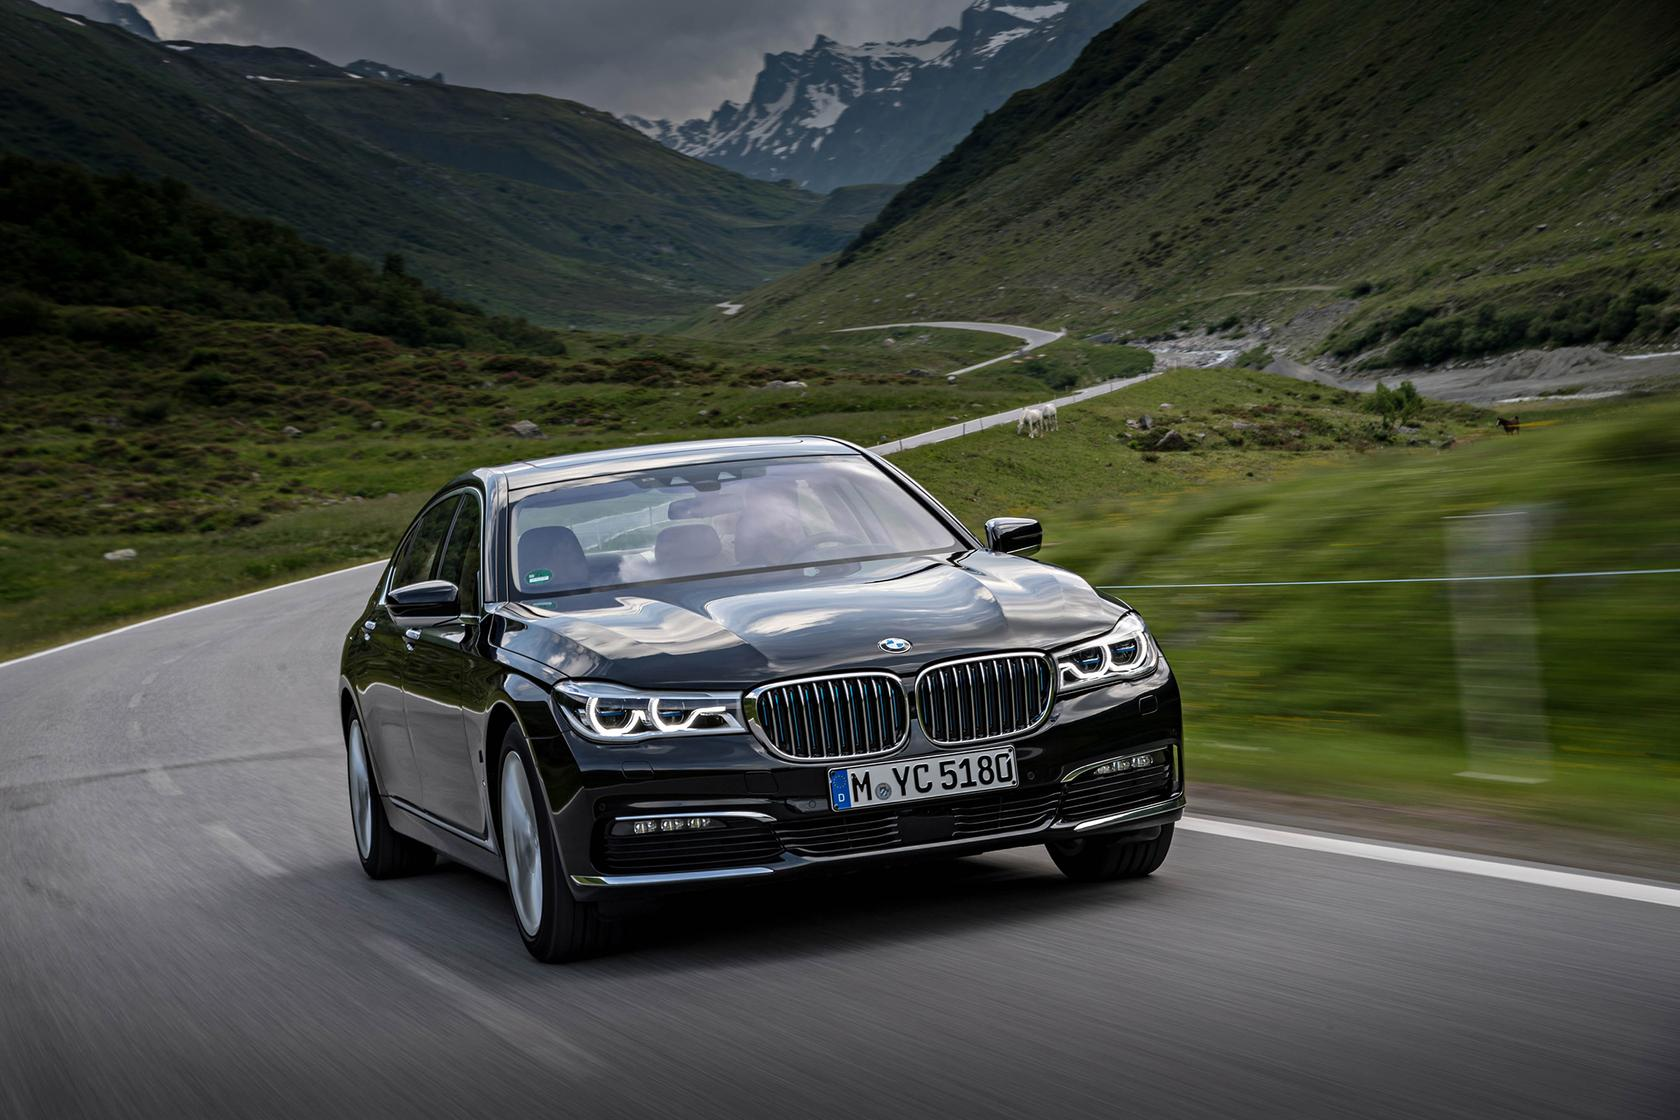 Bmw 7 Series Best Luxury Cars: 2017 Luxury Car Of The Year: BMW 7 Series